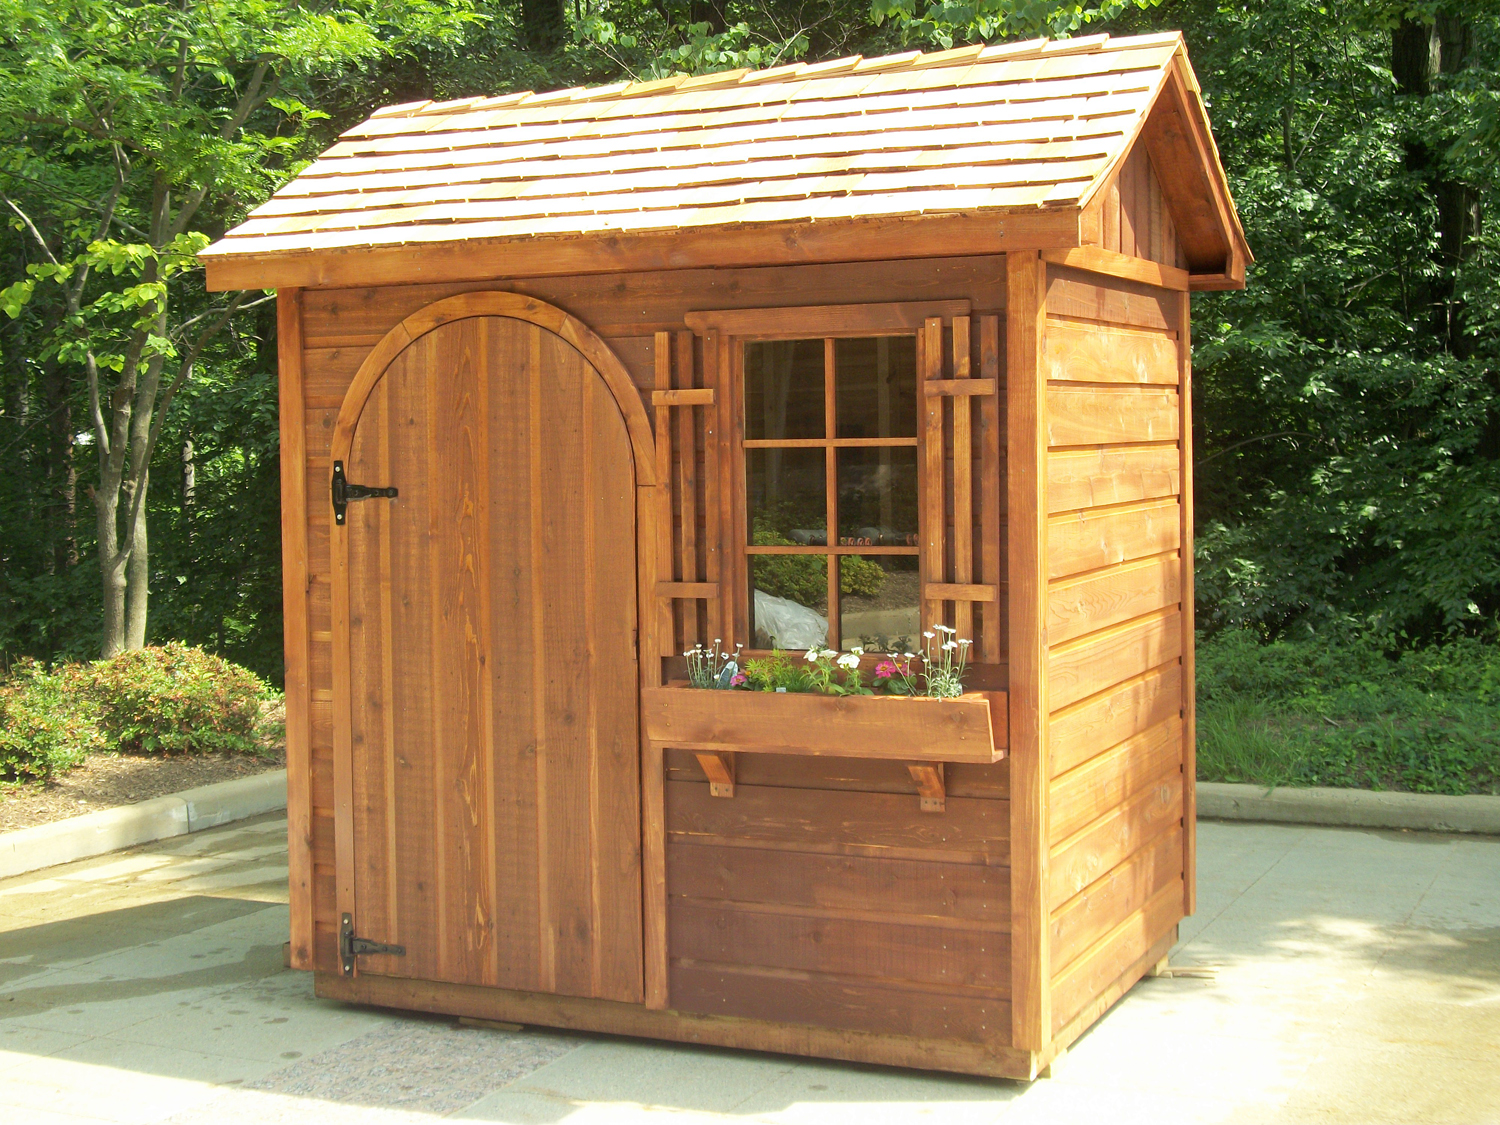 win this garden shed built entirely by women for just 1000 call habitat for humanity of northern virginia